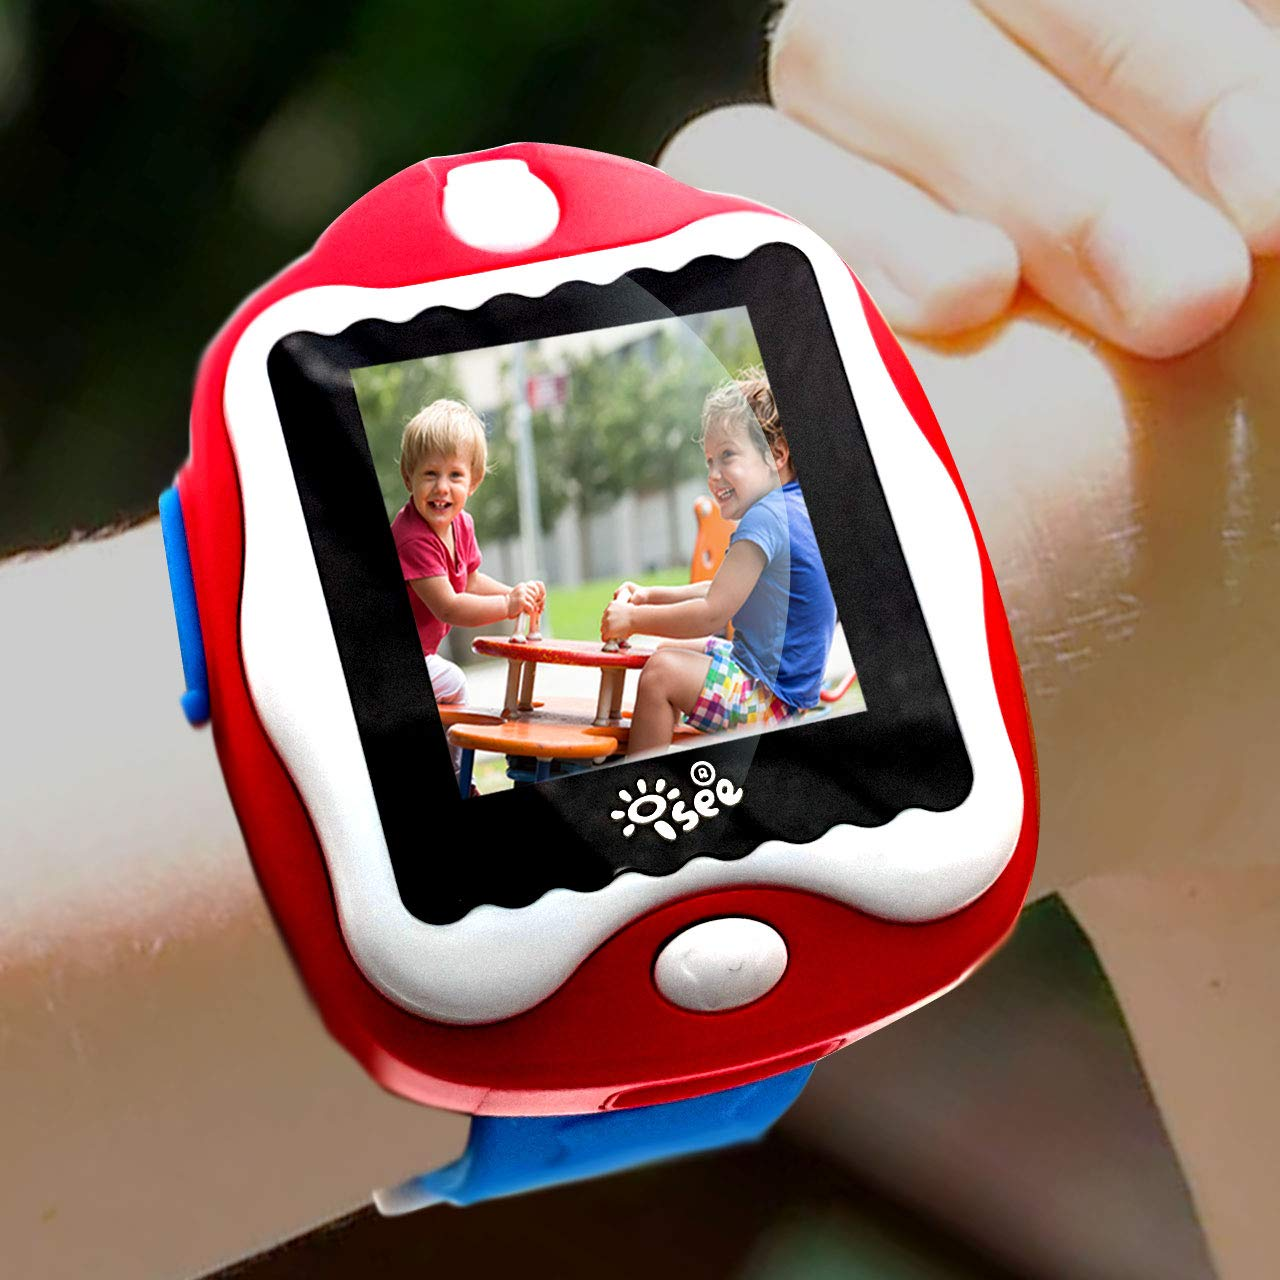 Amazon.com: Durable Smart Watch for Kids, Gadgets Games for ...